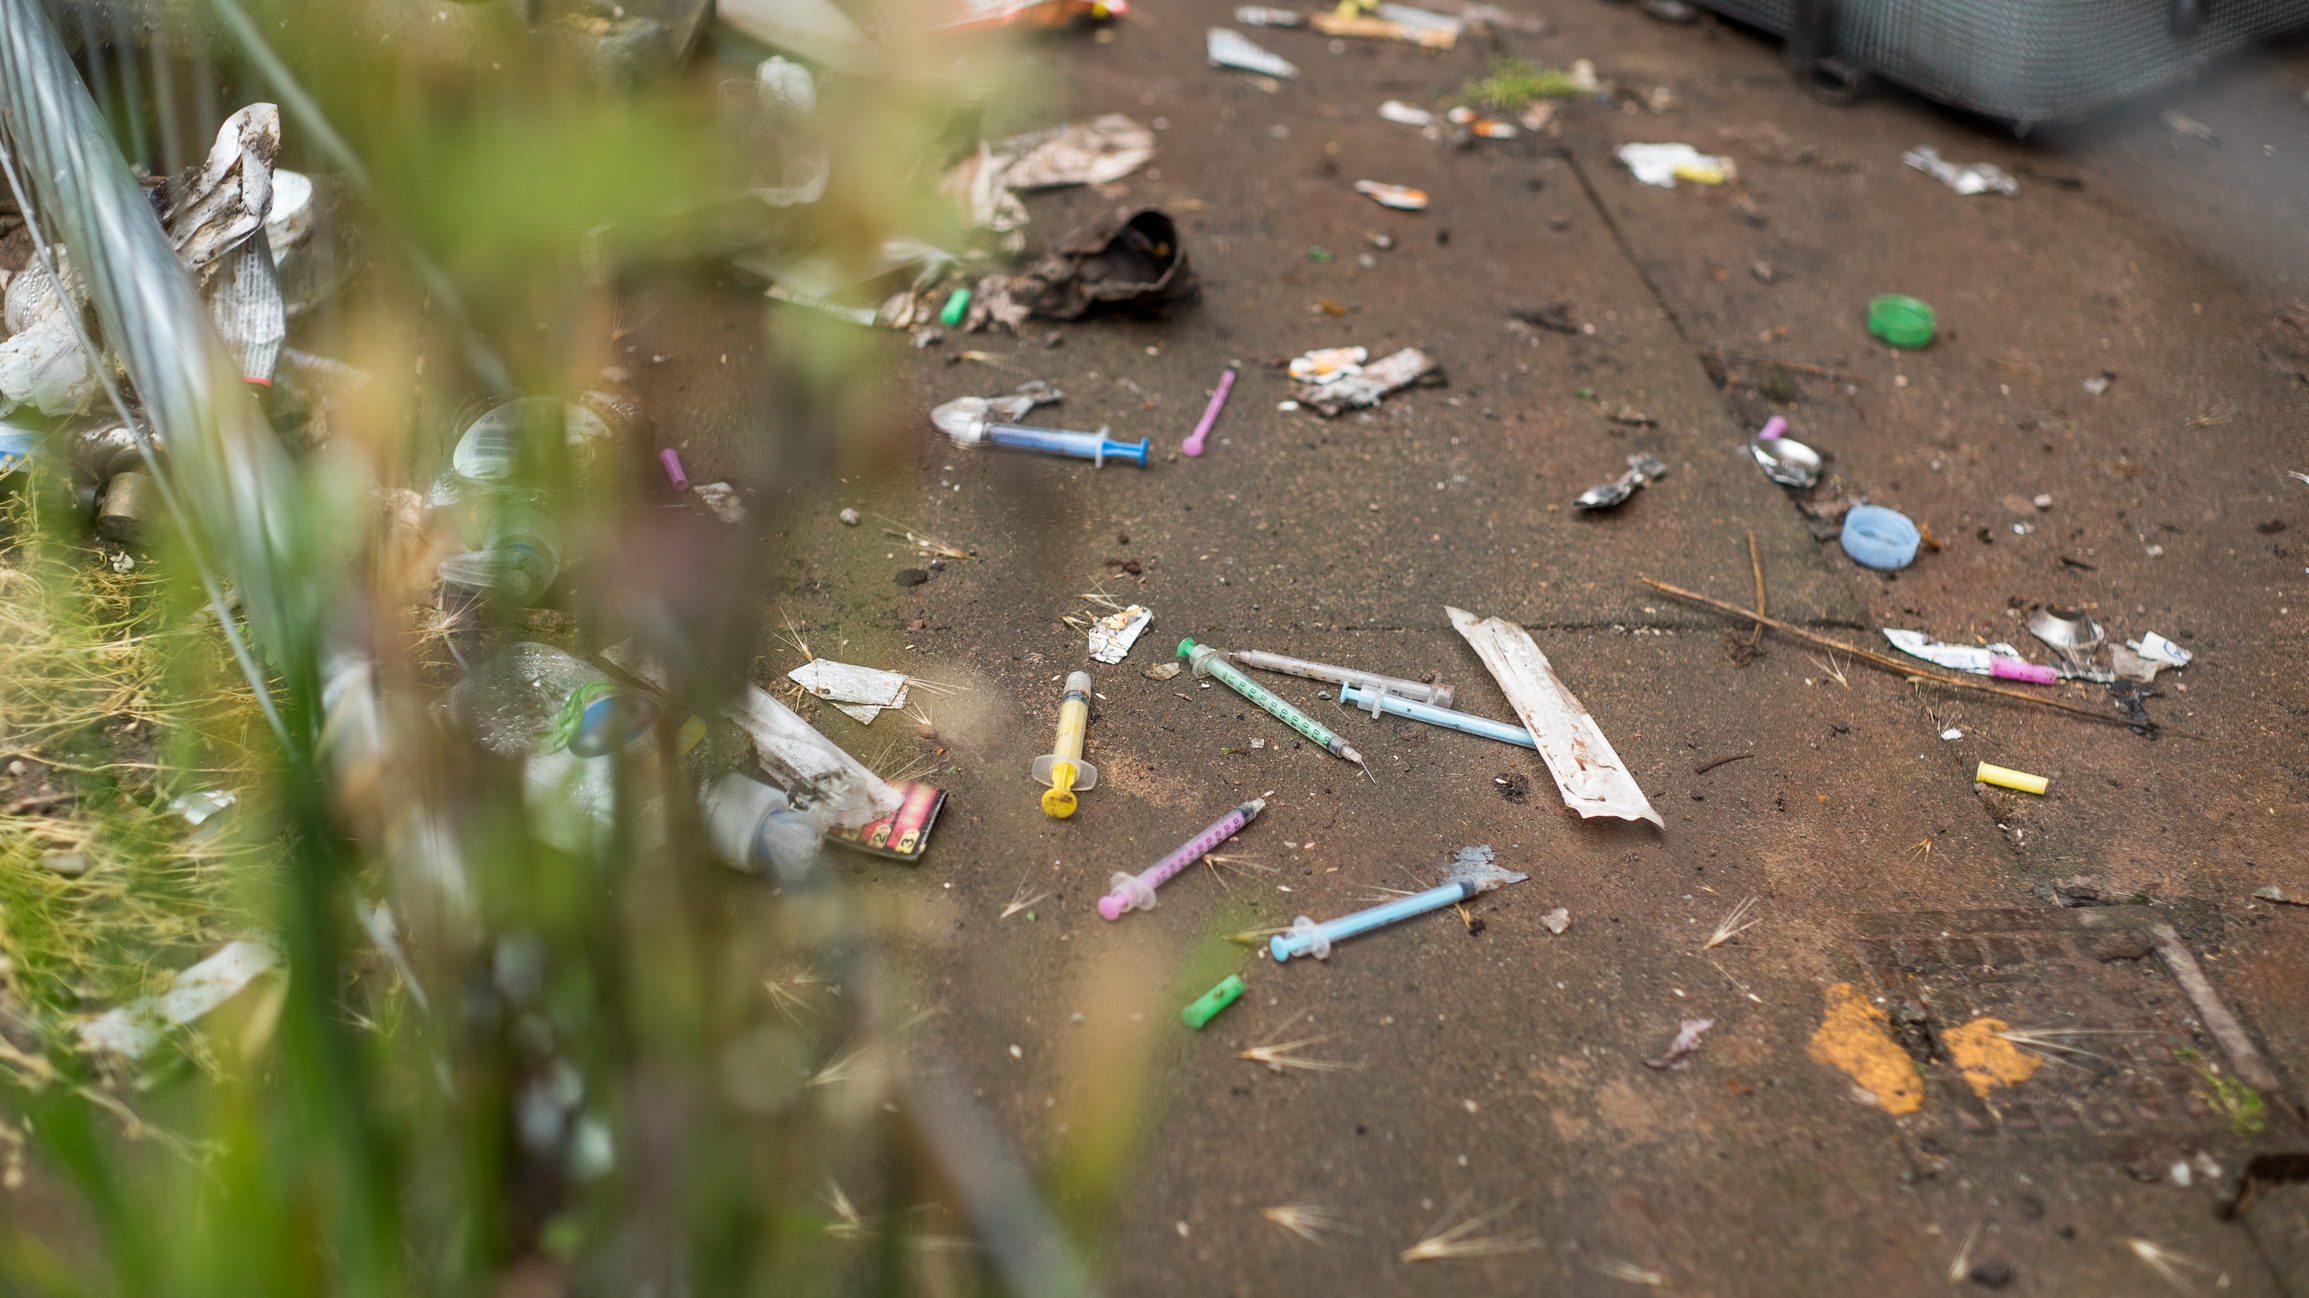 Syringes scattered on a litter strewn pavement. (Getty Images)